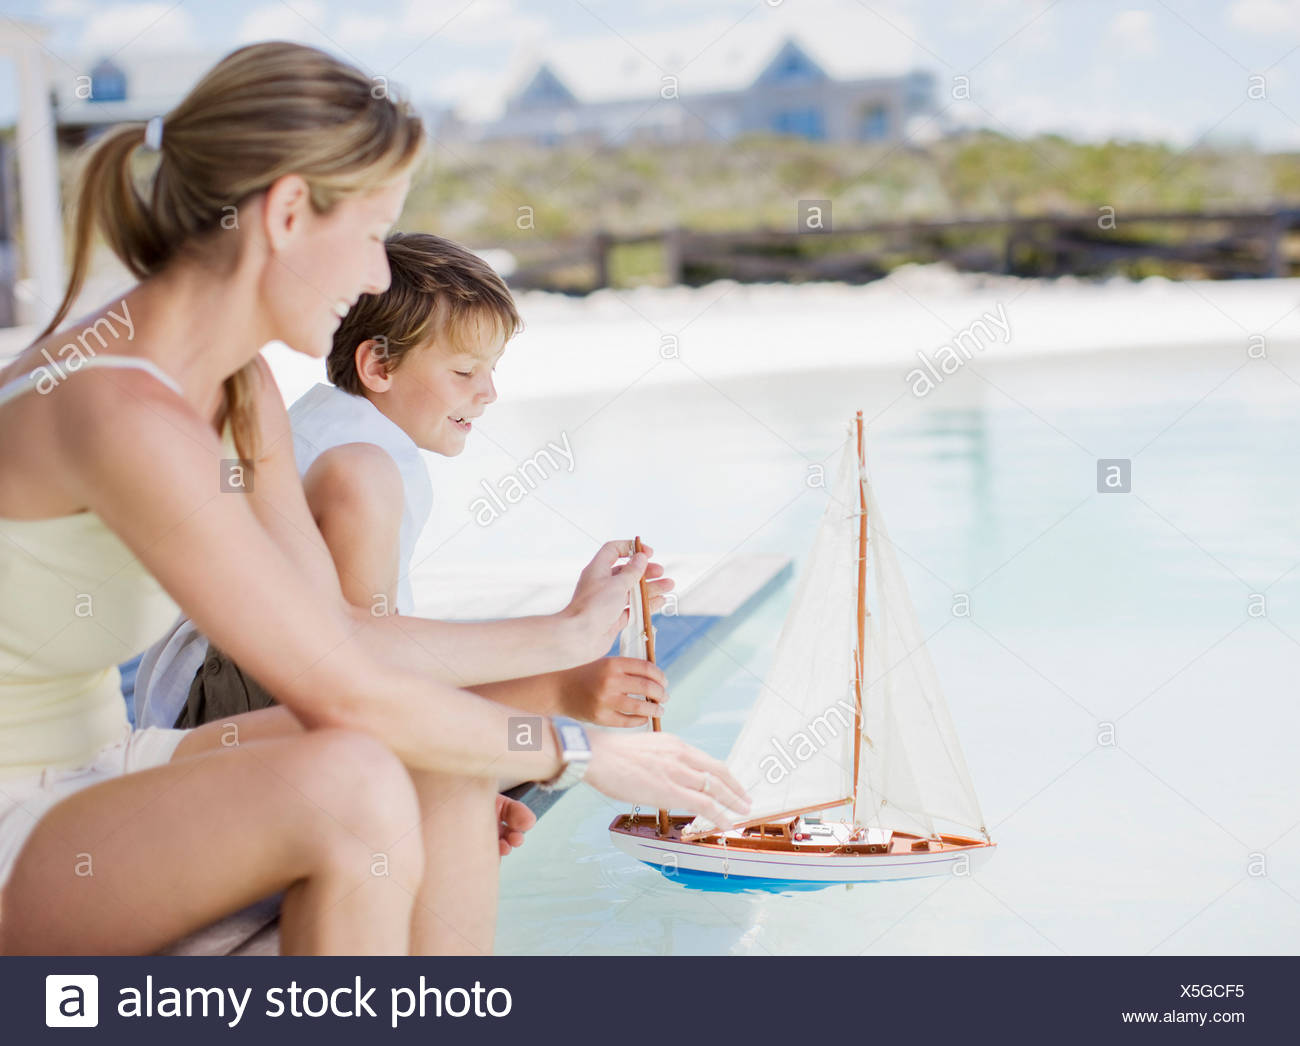 Mother and son playing with miniature boat in pool - Stock Image